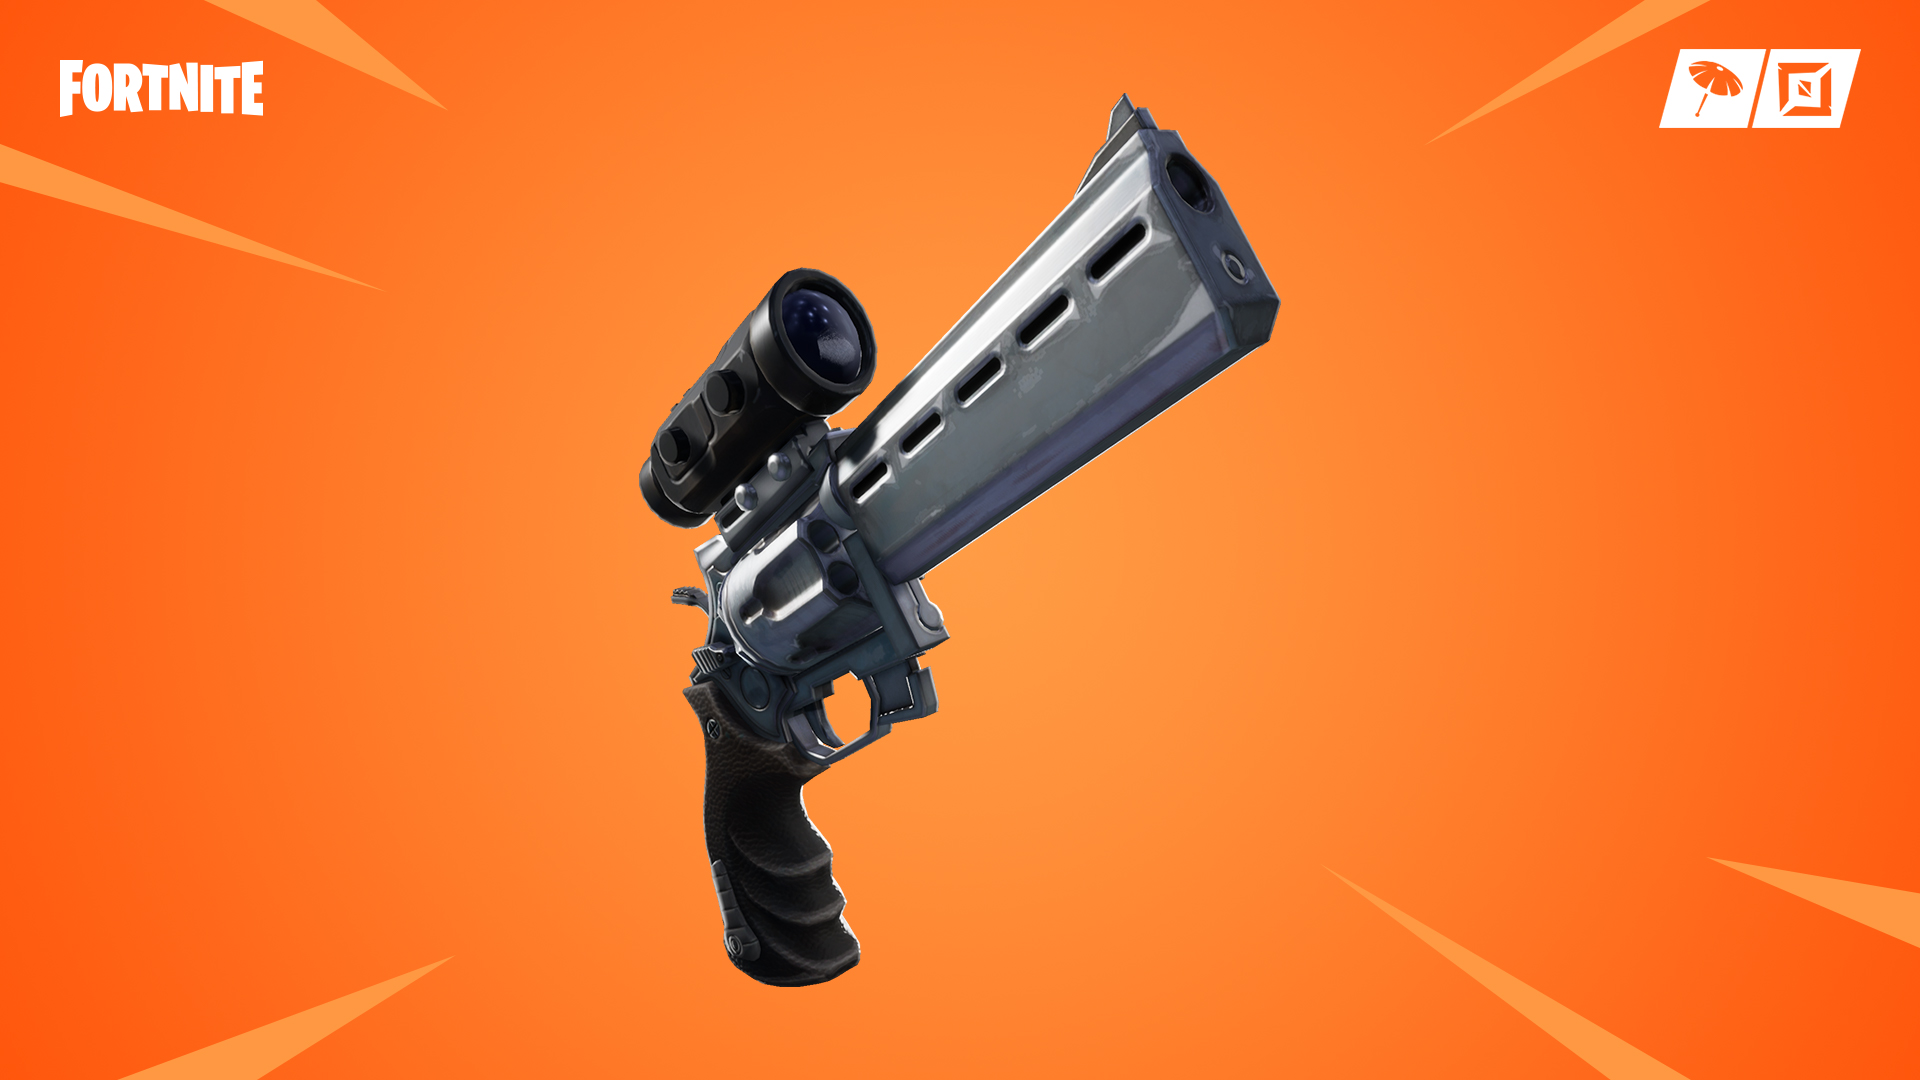 Fortnite_Scoped Revolver